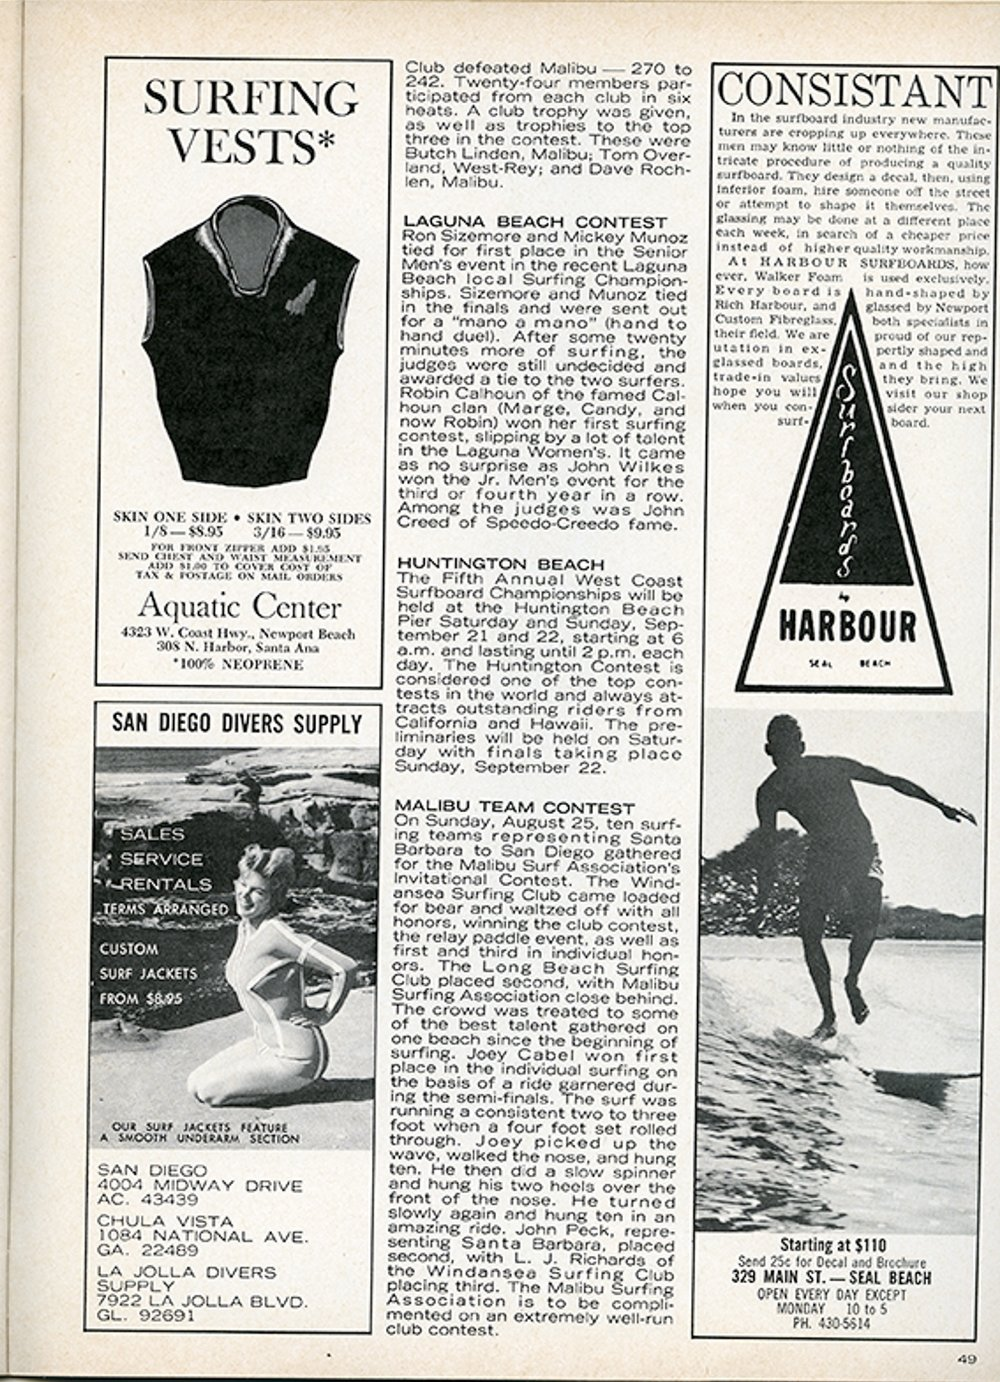 SURFER MAG 1963 OCT-NOV VOL4